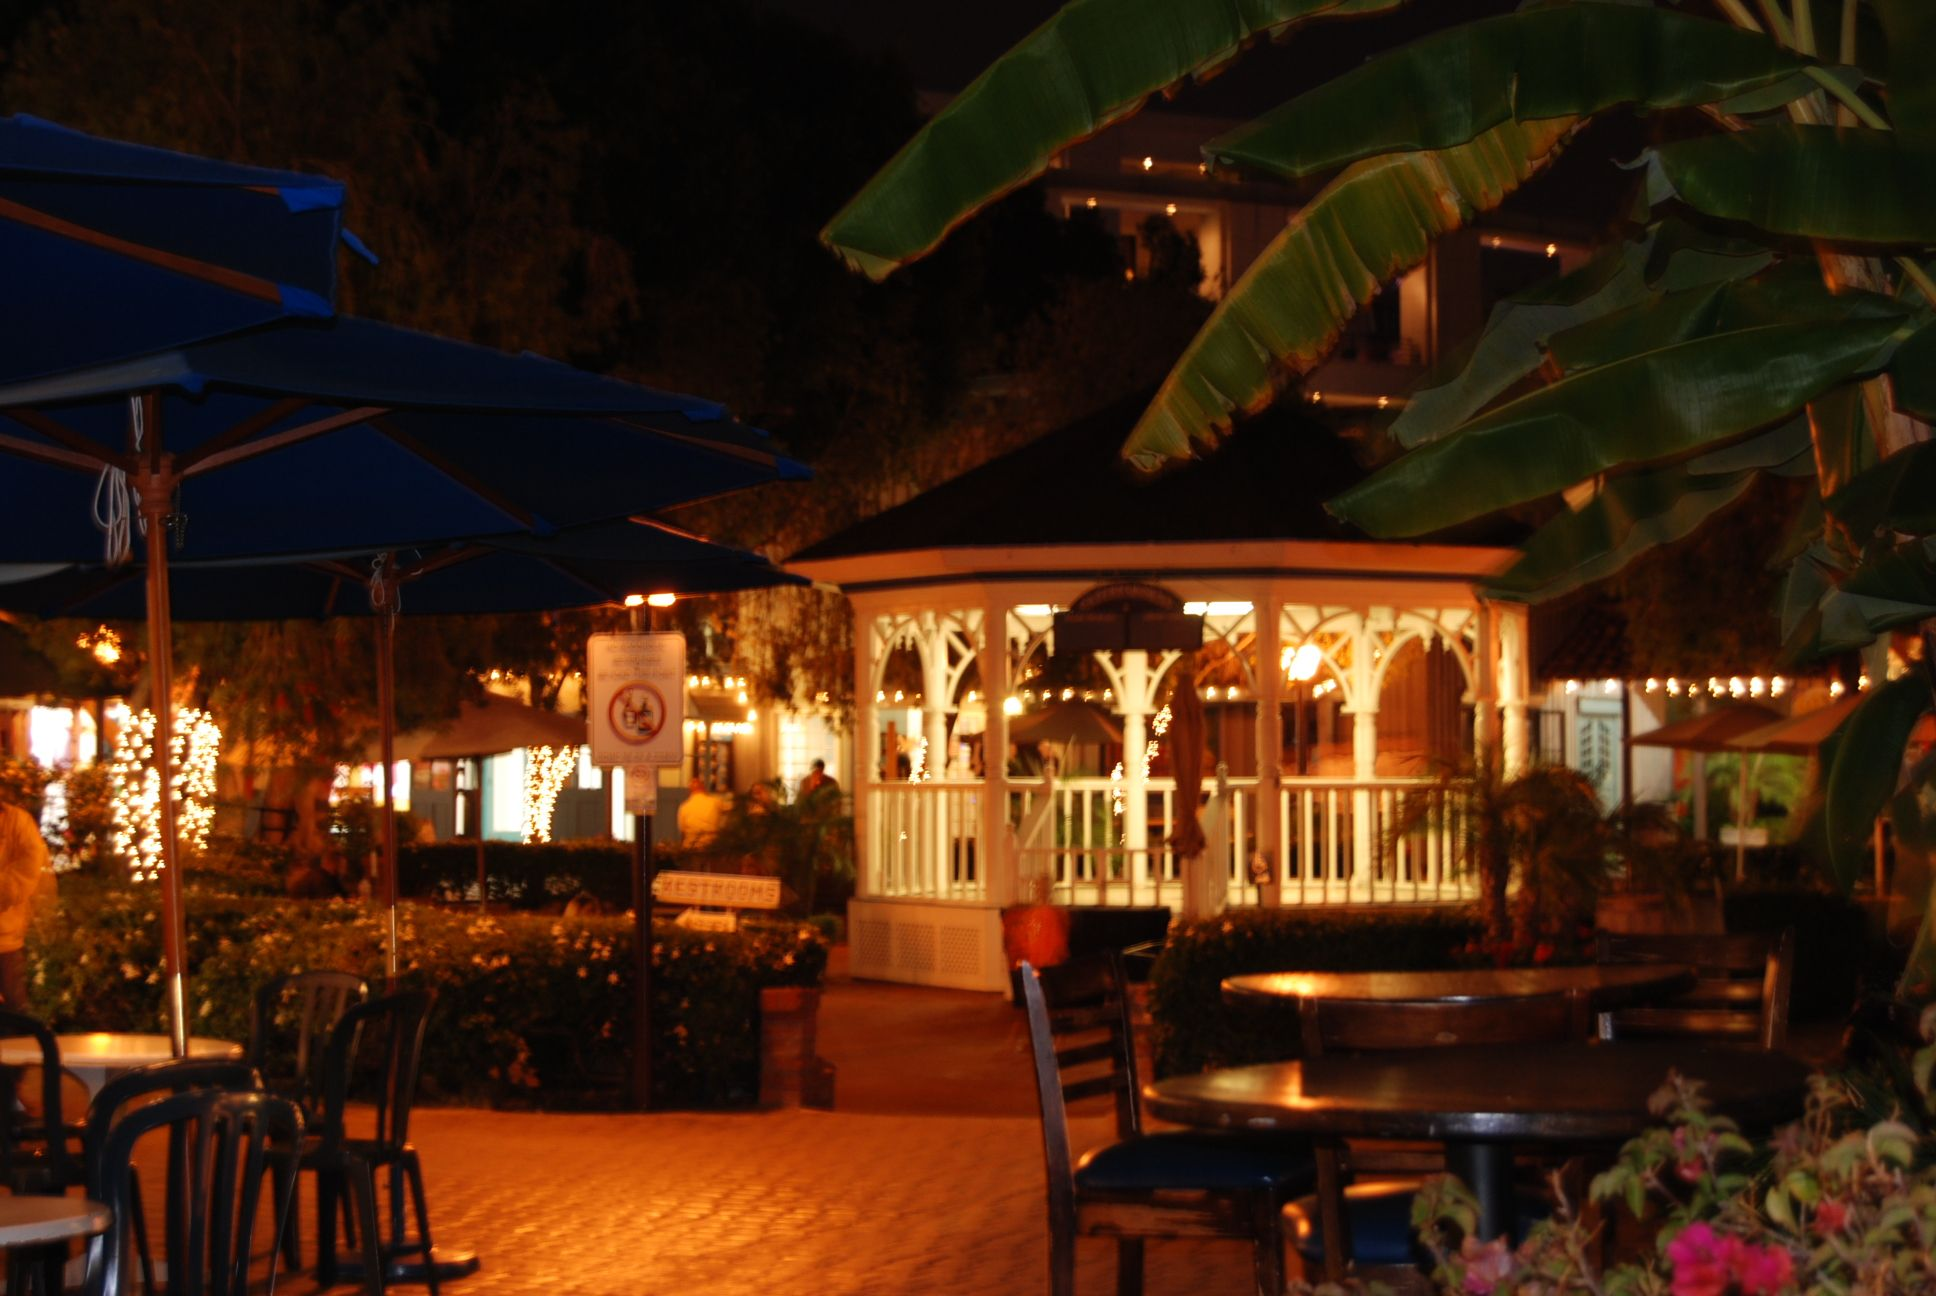 It was a beautiful night — at Seaport Village San Diego, CA | Places ...